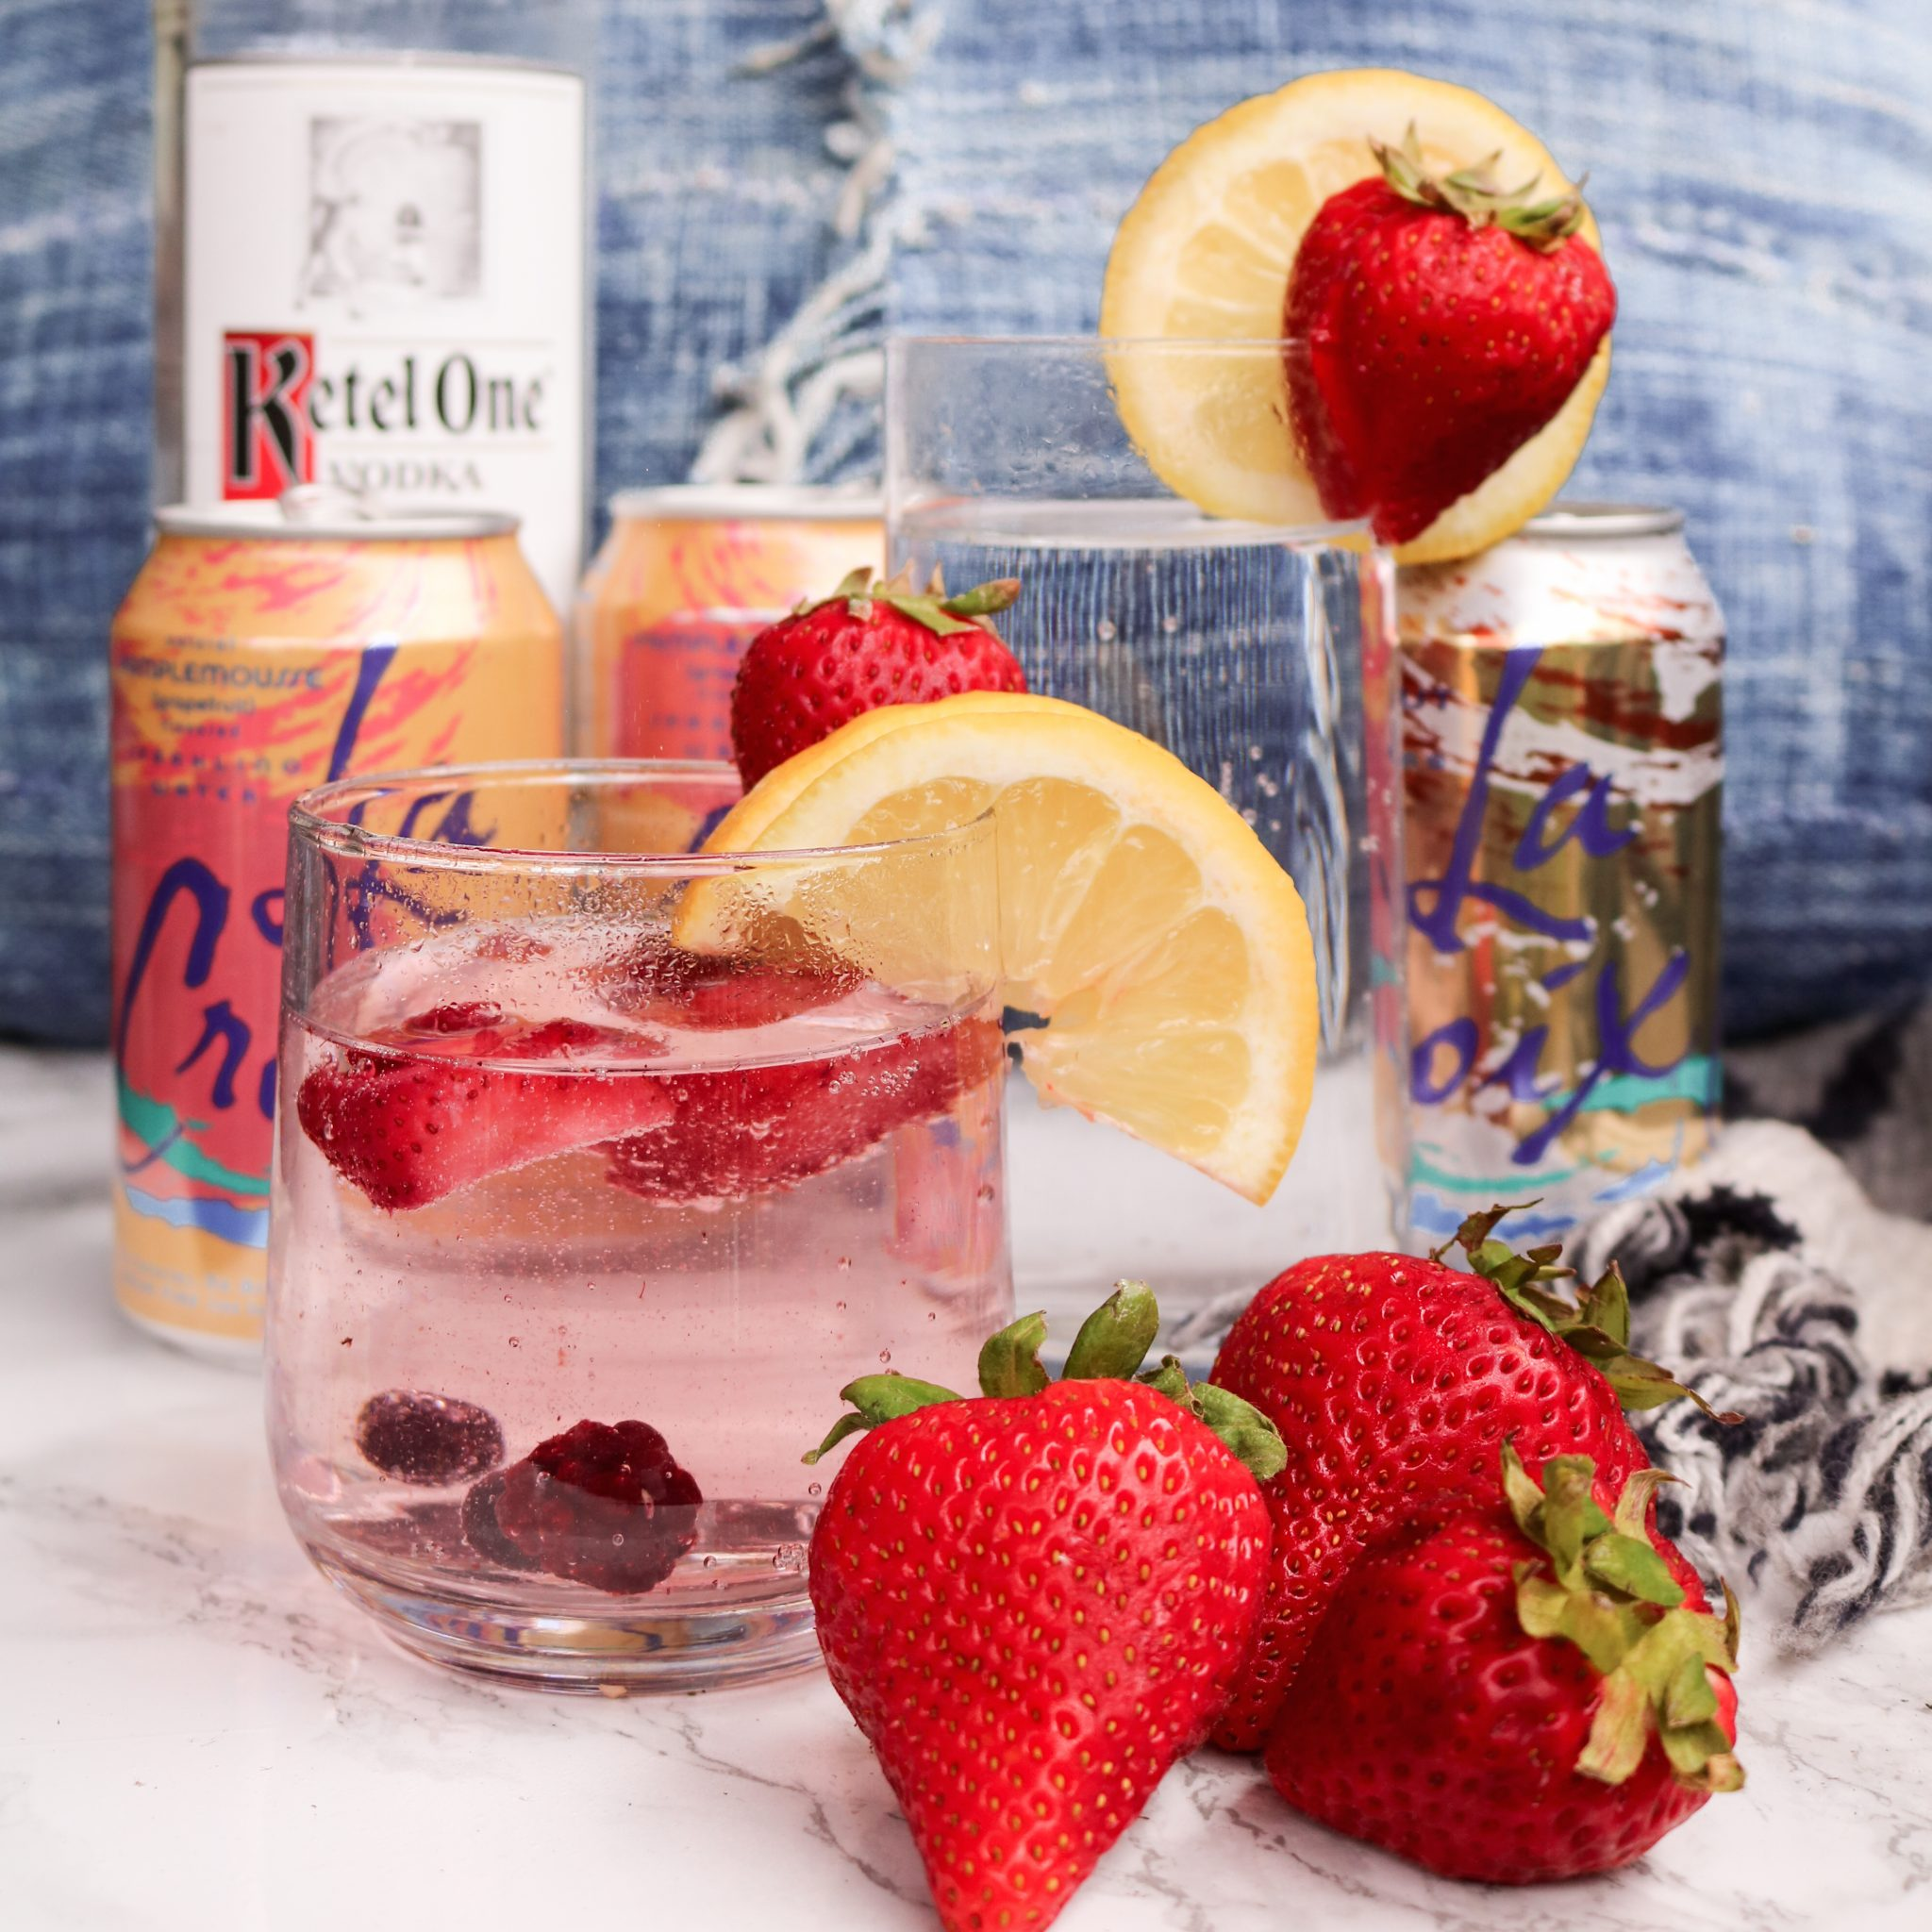 The-Hungarian-Brunette-Skinny-cocktails-lacroix-water-and-vodka-1-of-4-copy.jpg